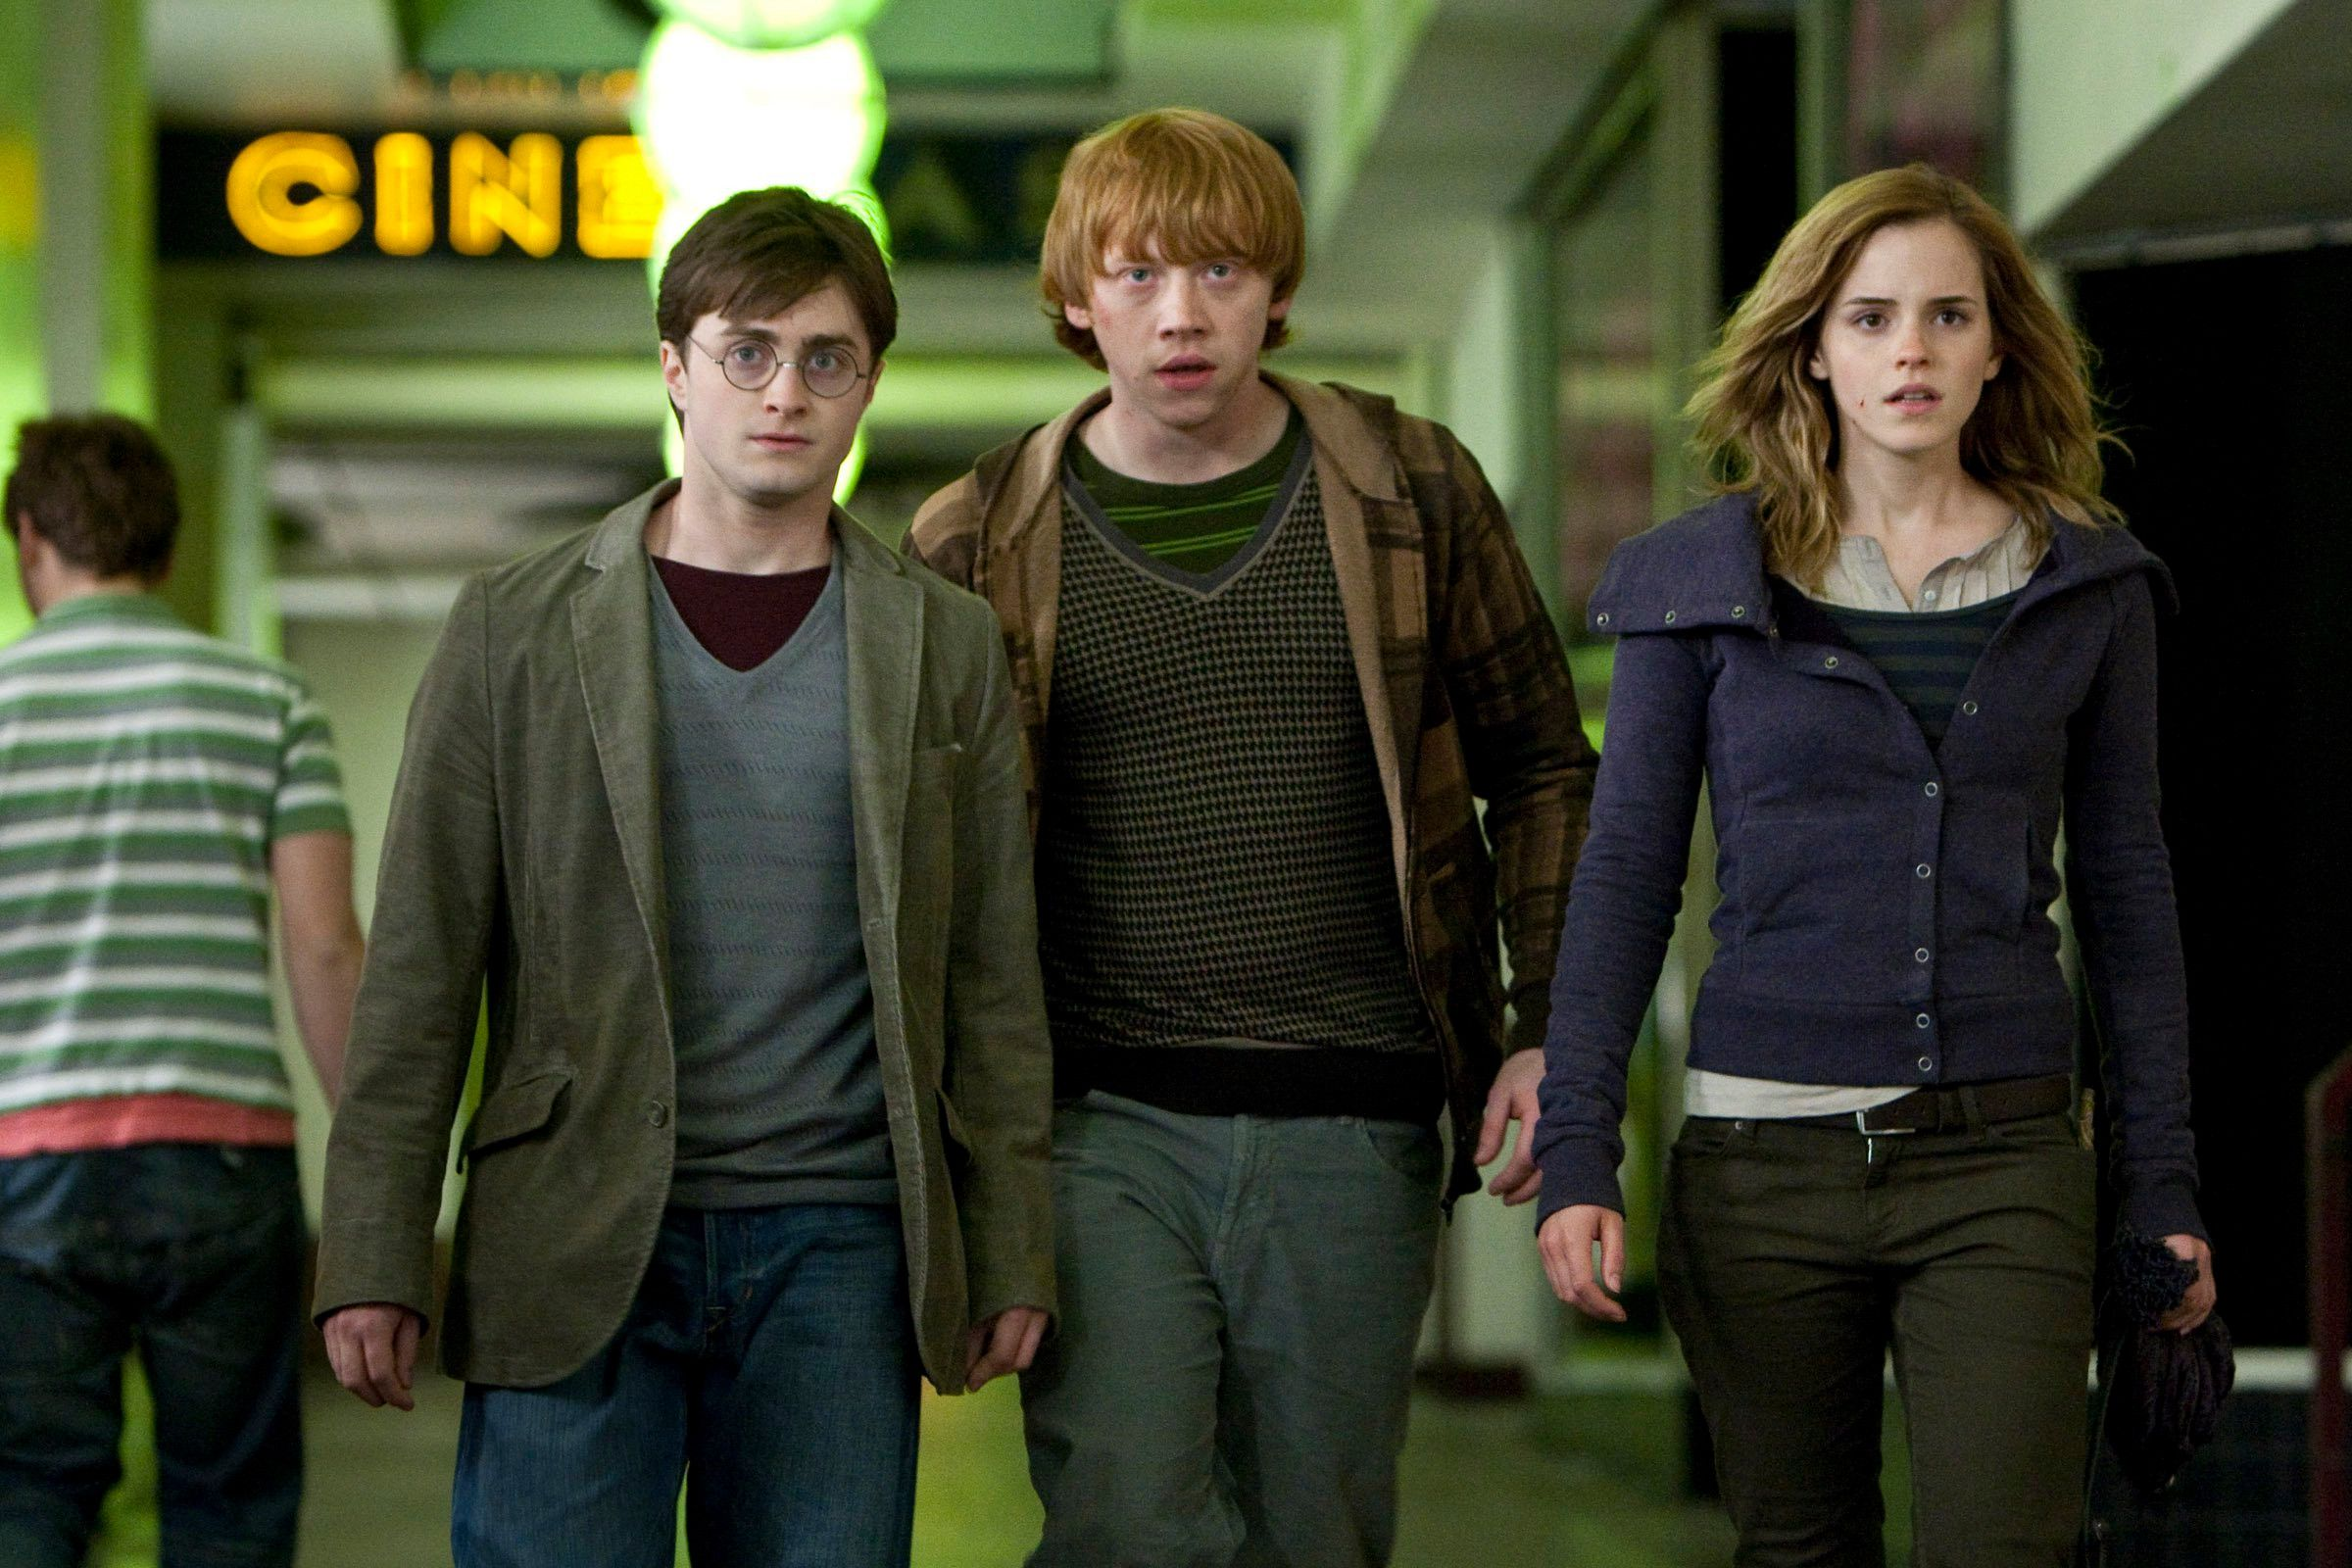 Is Harry Potter On Netflix How To Stream The Films In The Uk In 2020 Harry Potter Movies Harry Potter Outfits Ron And Hermione